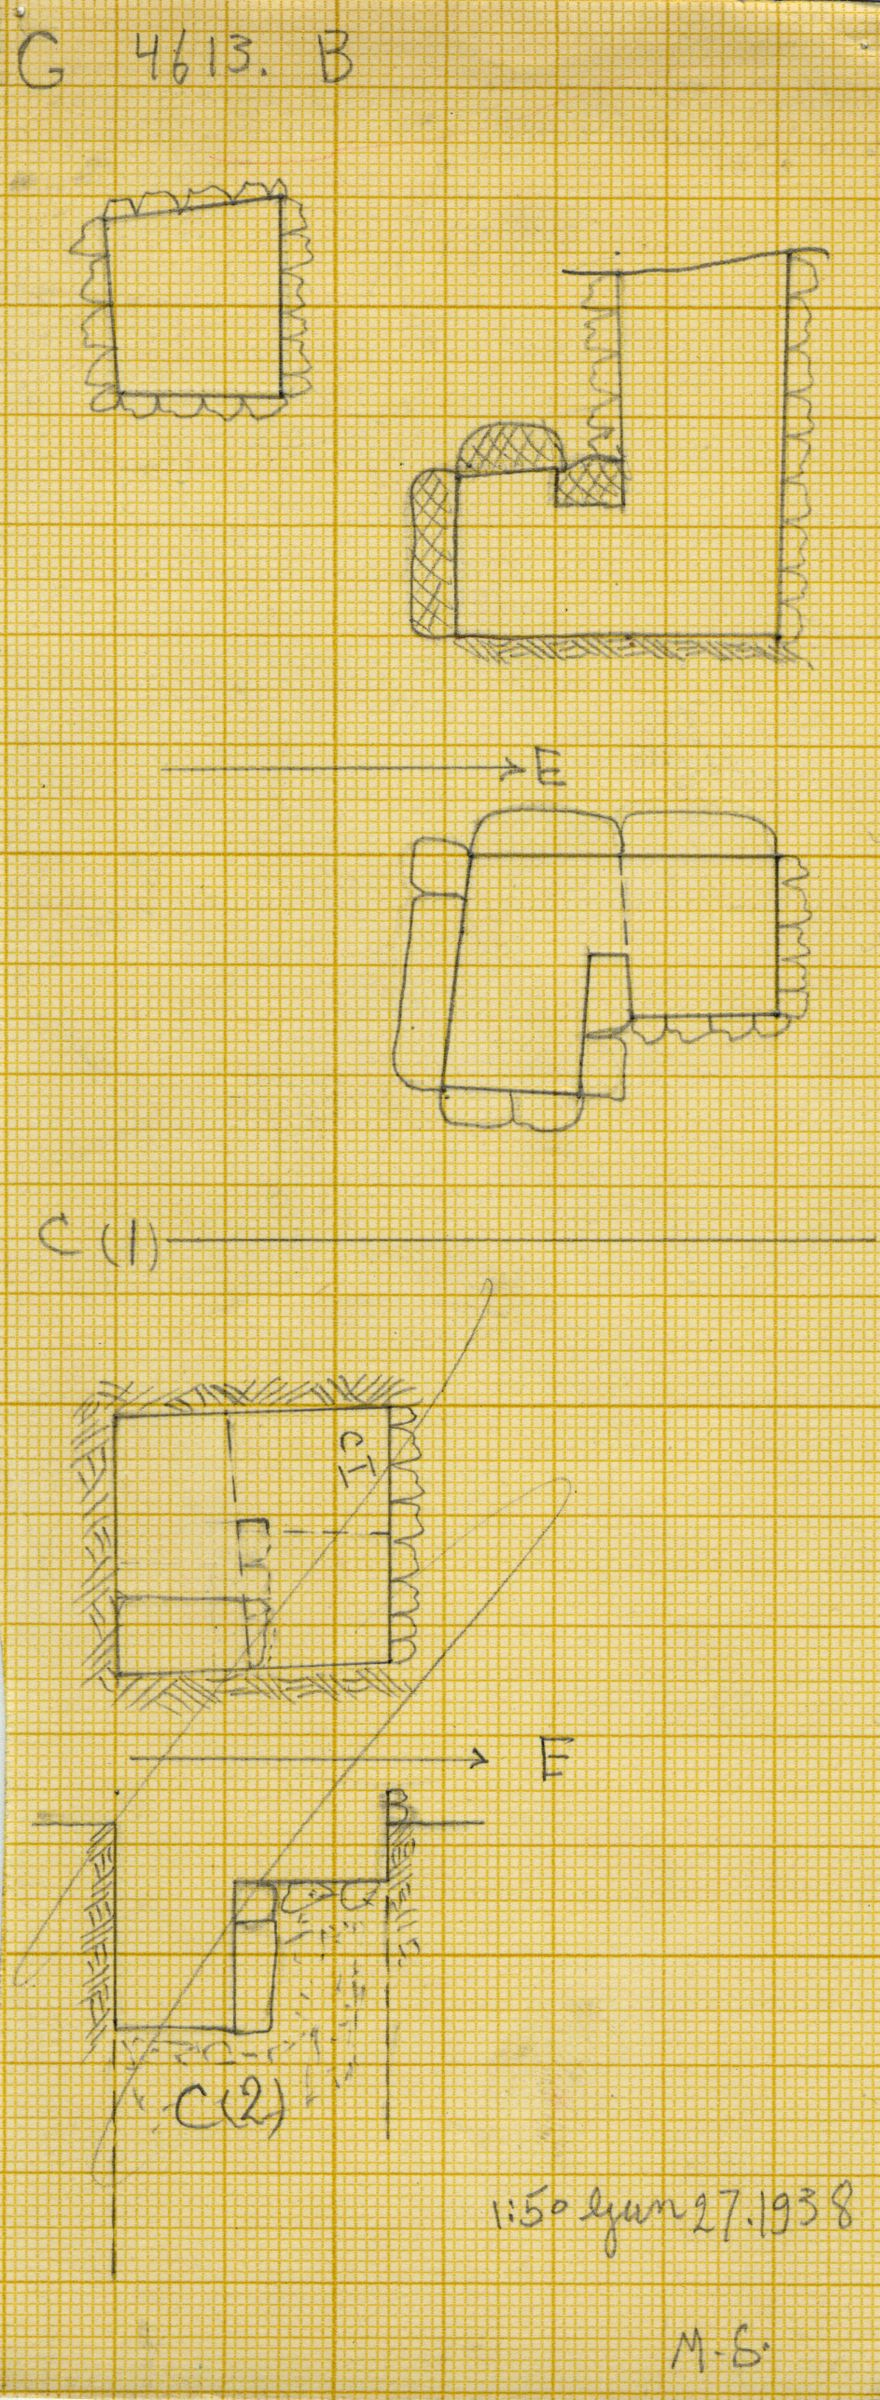 Maps and plans: G 4613, Shaft B and C1